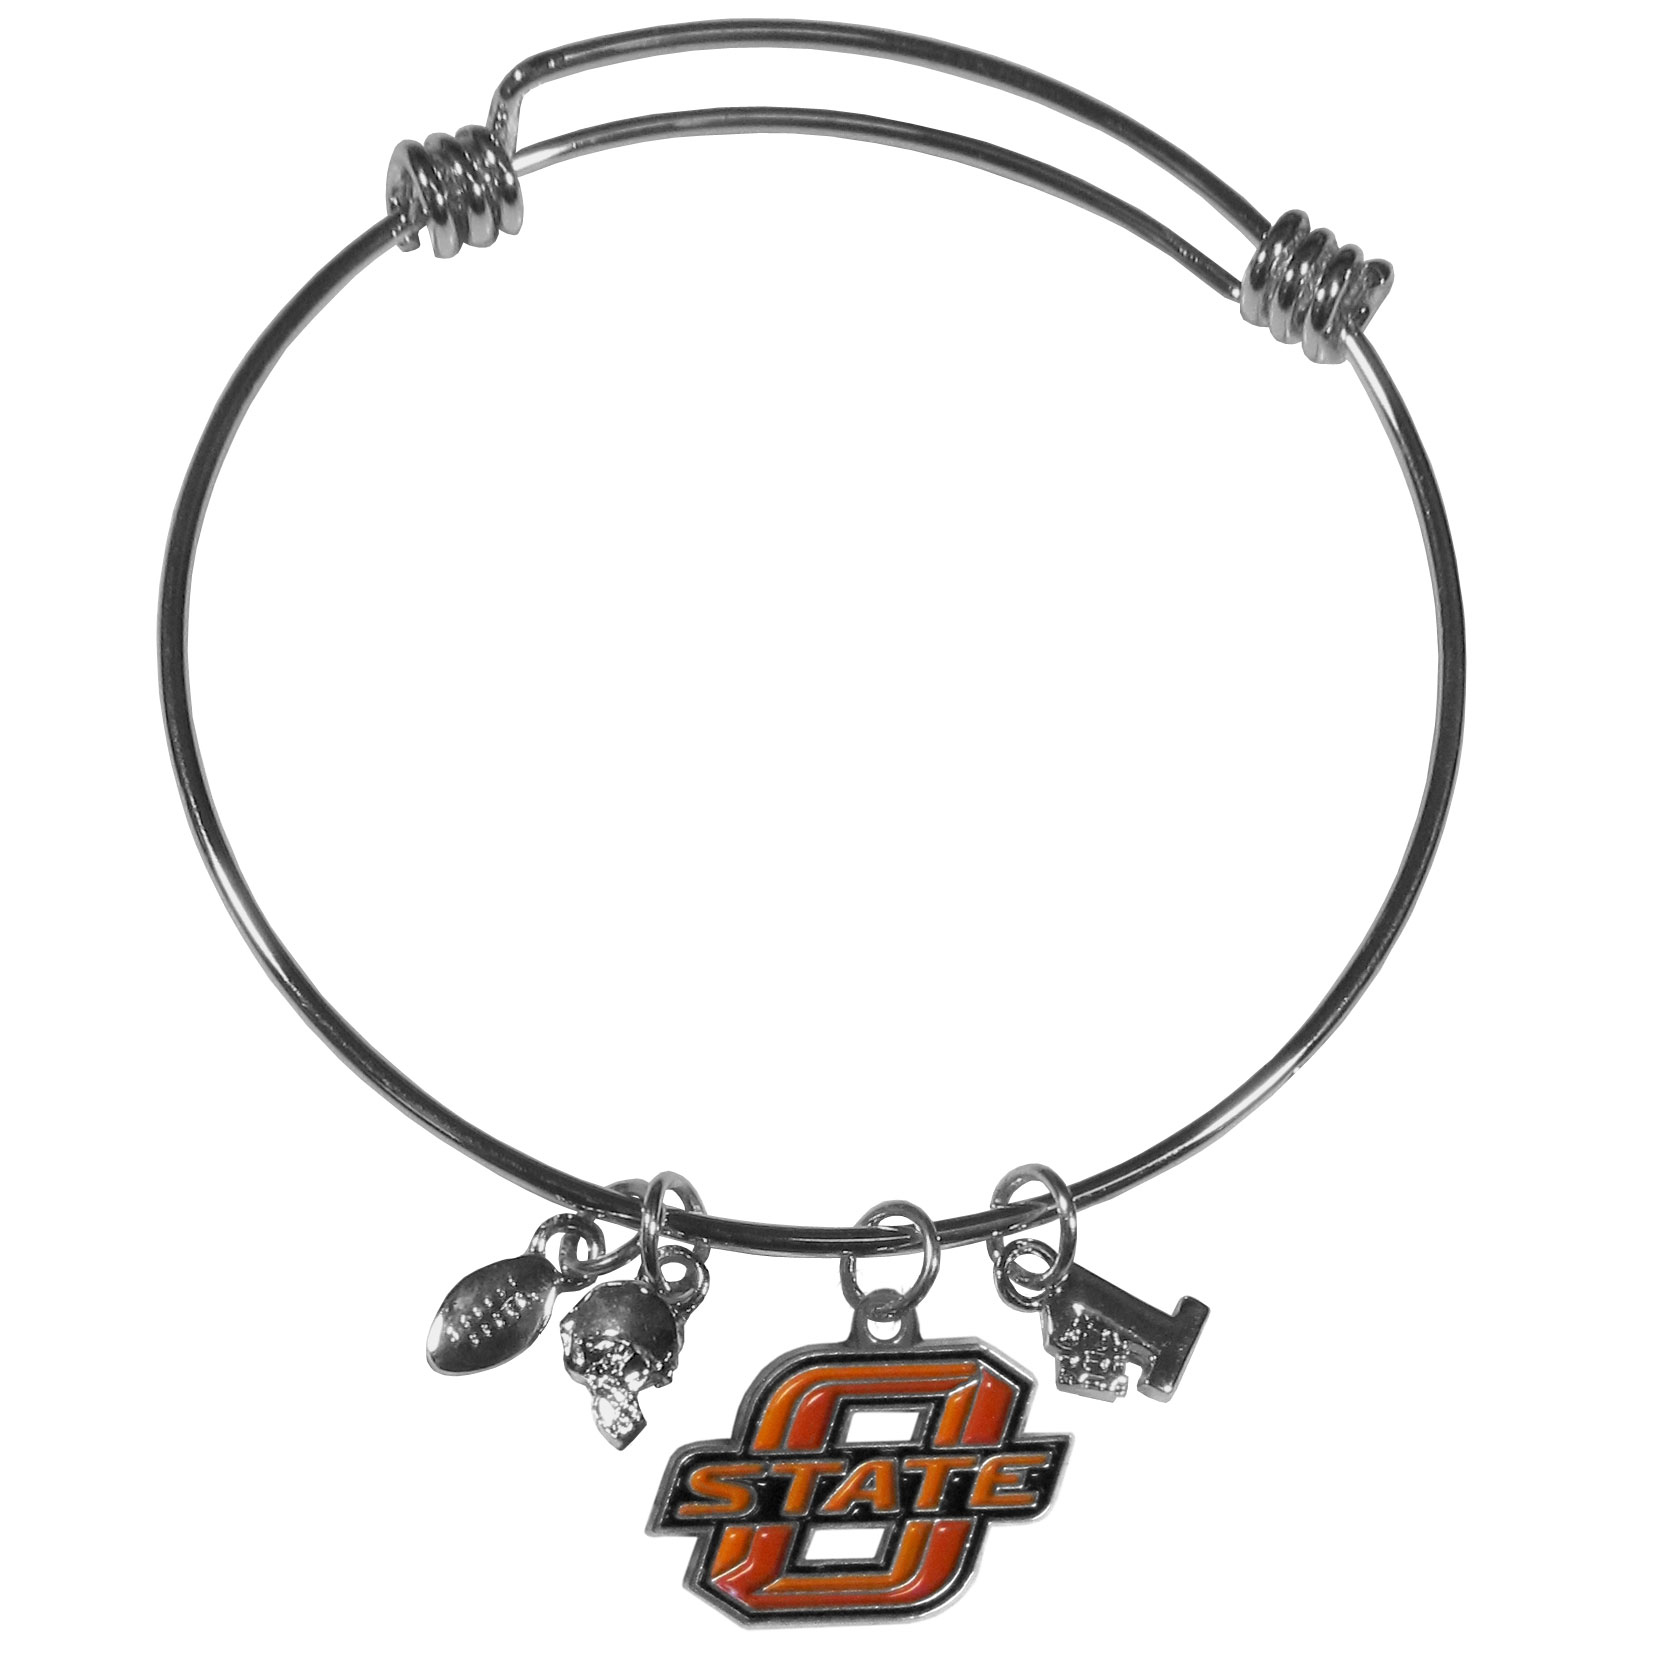 Oklahoma St. Cowboys Charm Bangle Bracelet - Adjustable wire bracelets are all the rage and this Oklahoma St. Cowboys bracelet matches the popular trend with your beloved team. The bracelet features 4 charms in total, each feature exceptional detail and the team charm has enameled team colors.